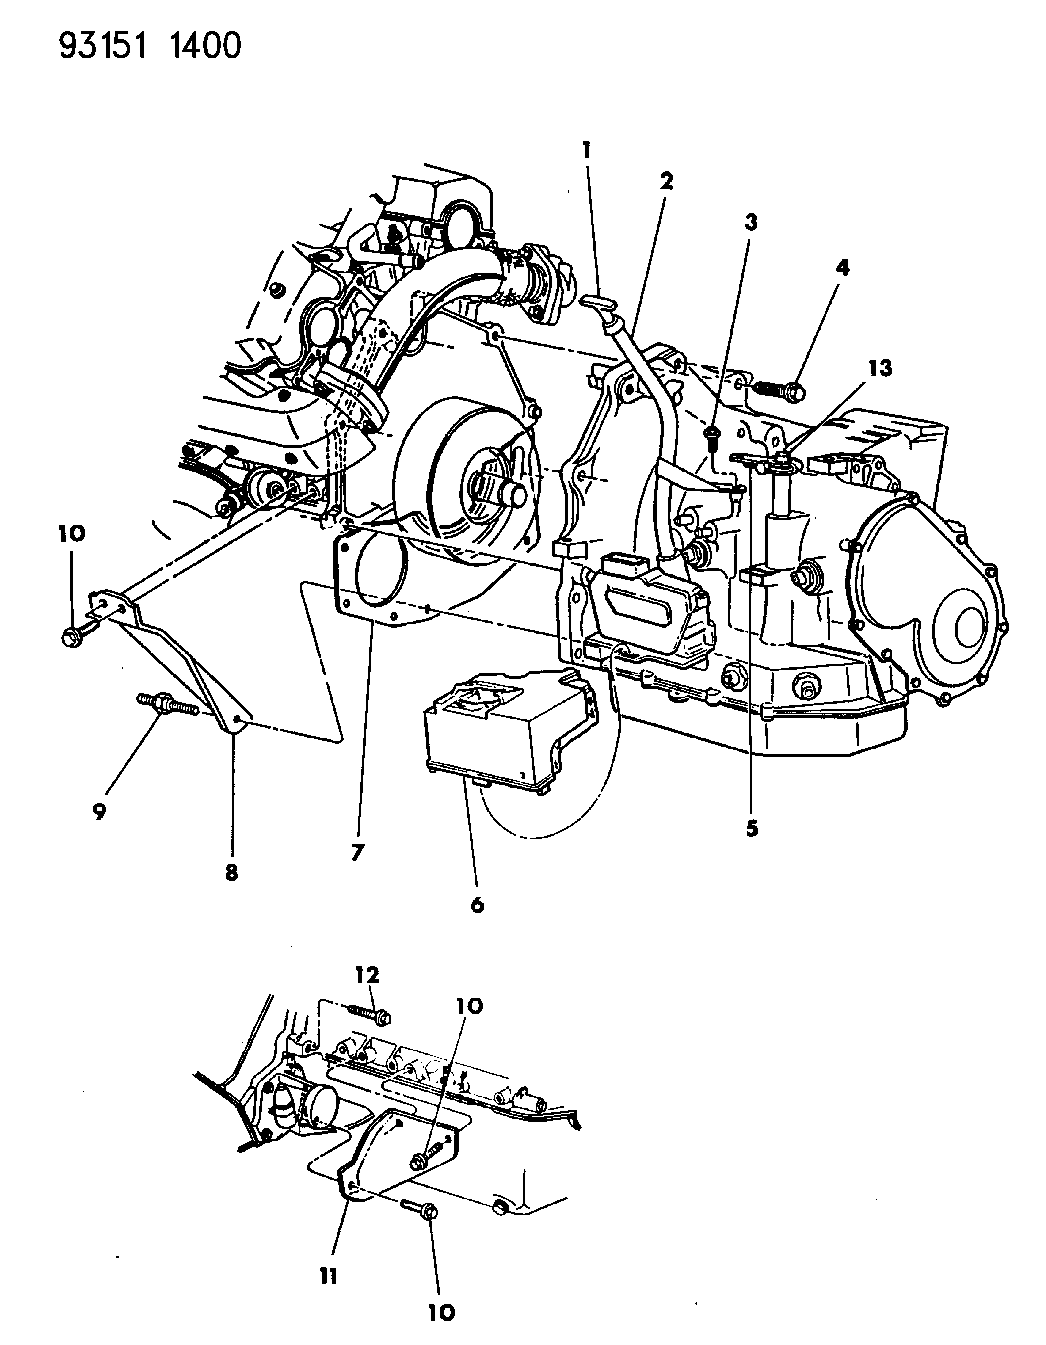 1993 dodge grand caravan transaxle mounting